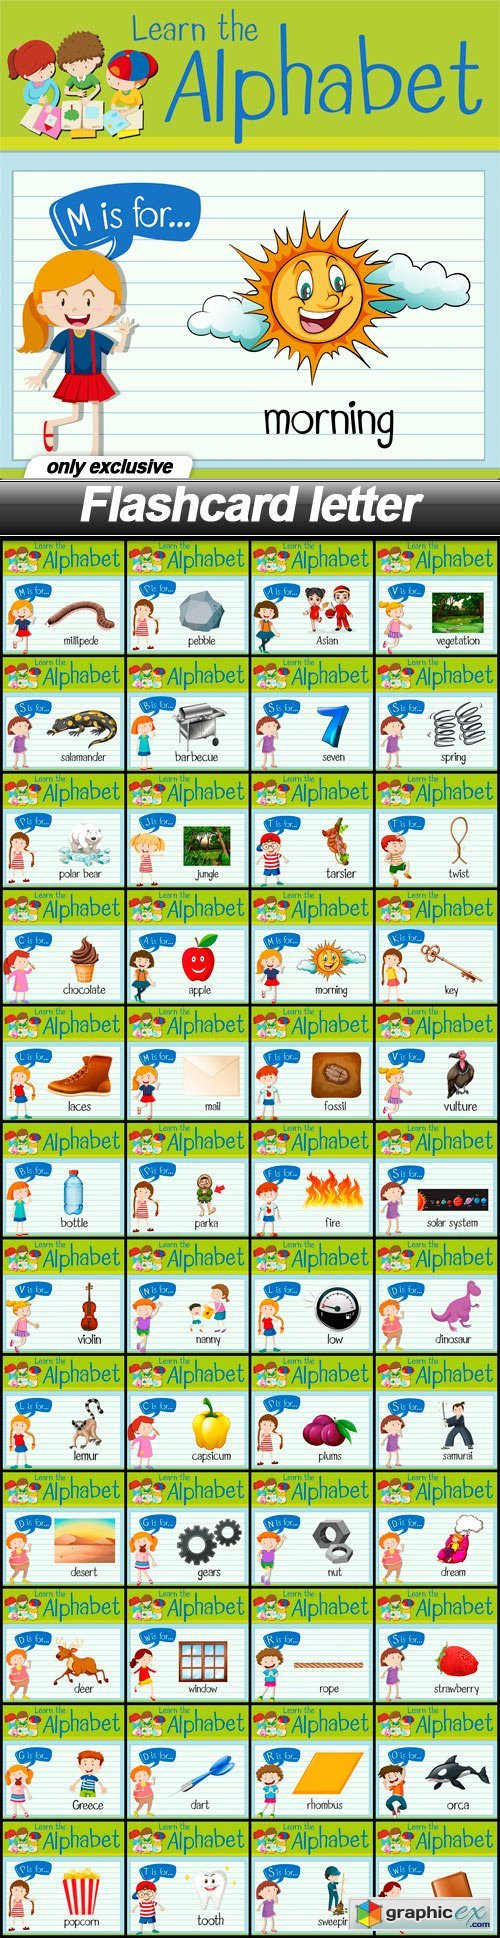 Flashcard letter - 48 EPS